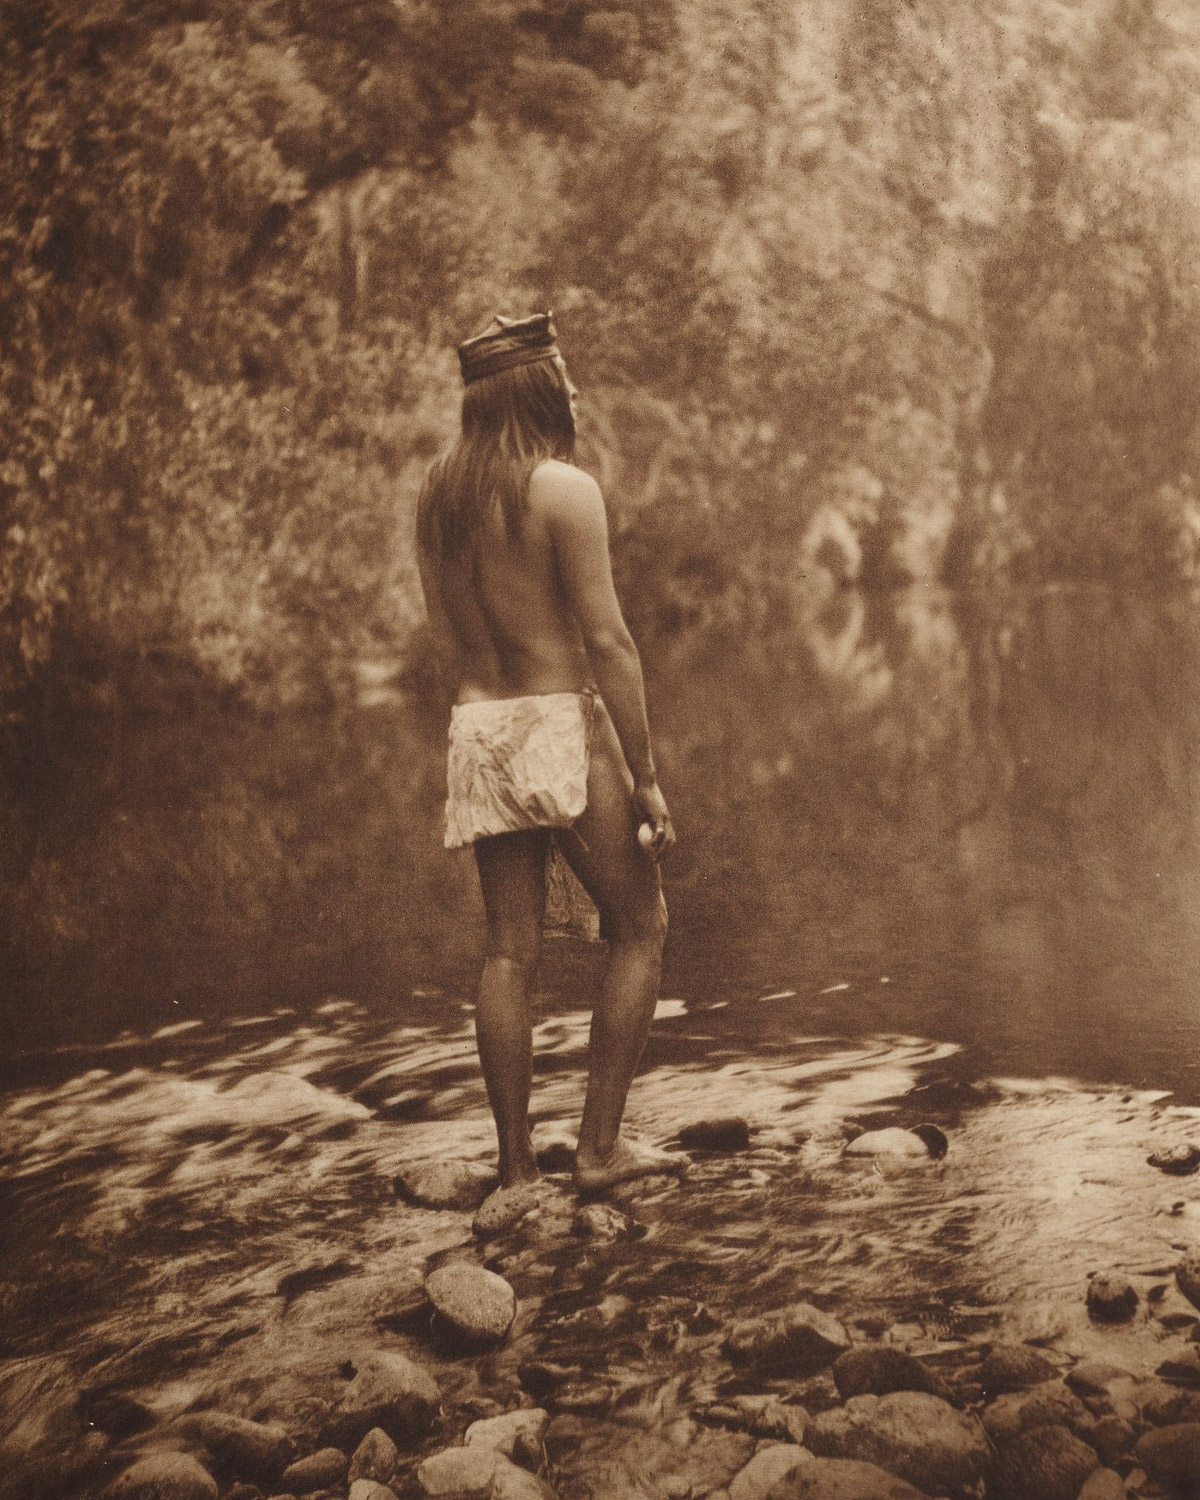 1,000+ Haunting & Beautiful Photos of Native American Peoples, (...) - @Open Culture Artes & contextos curtis4x5 16